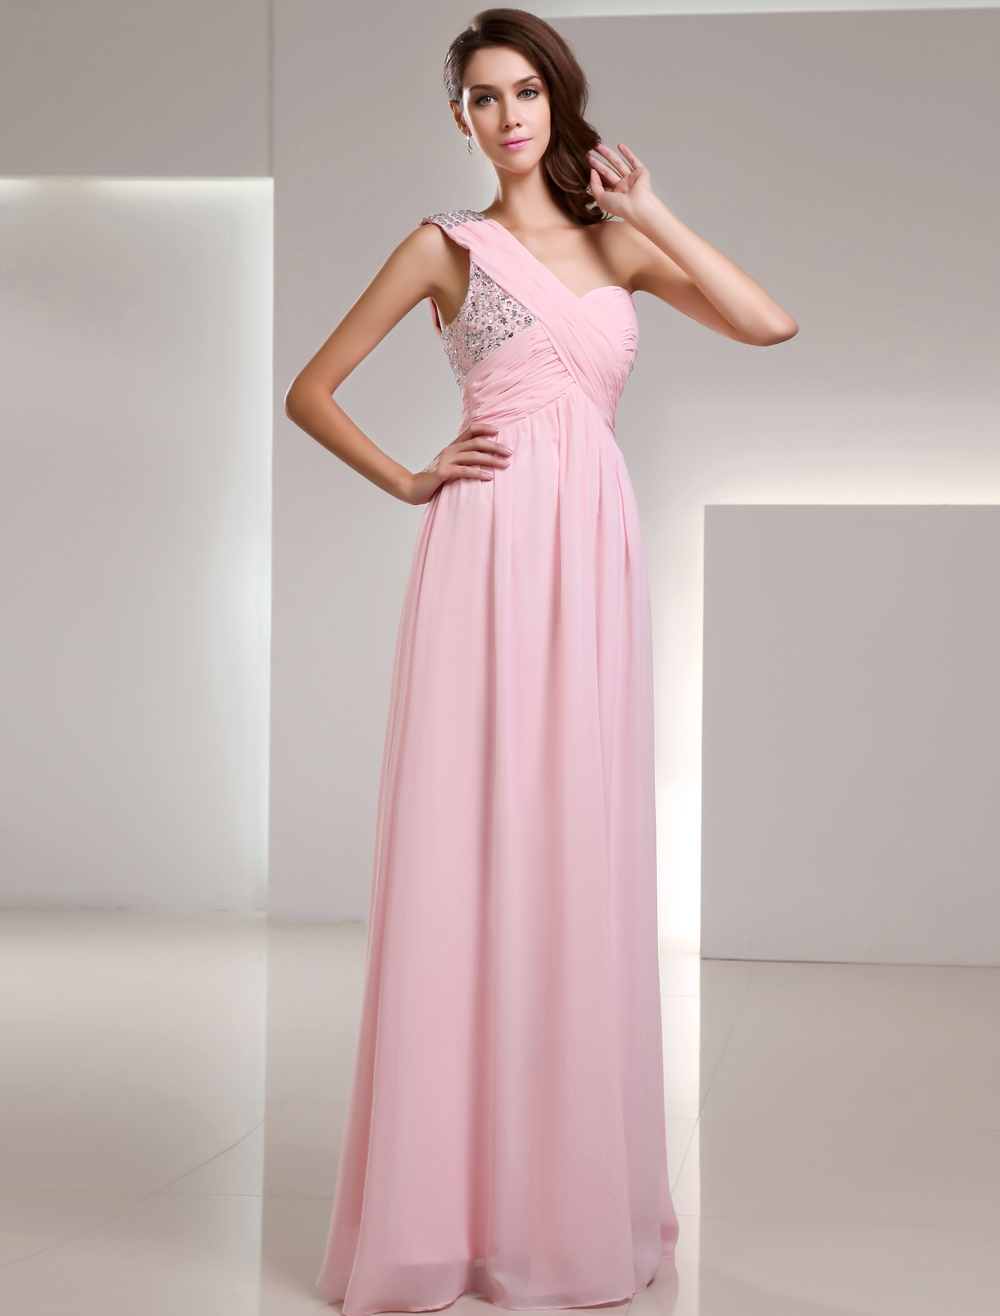 Pink One-Shoulder Sequin Chiffon Prom Dress